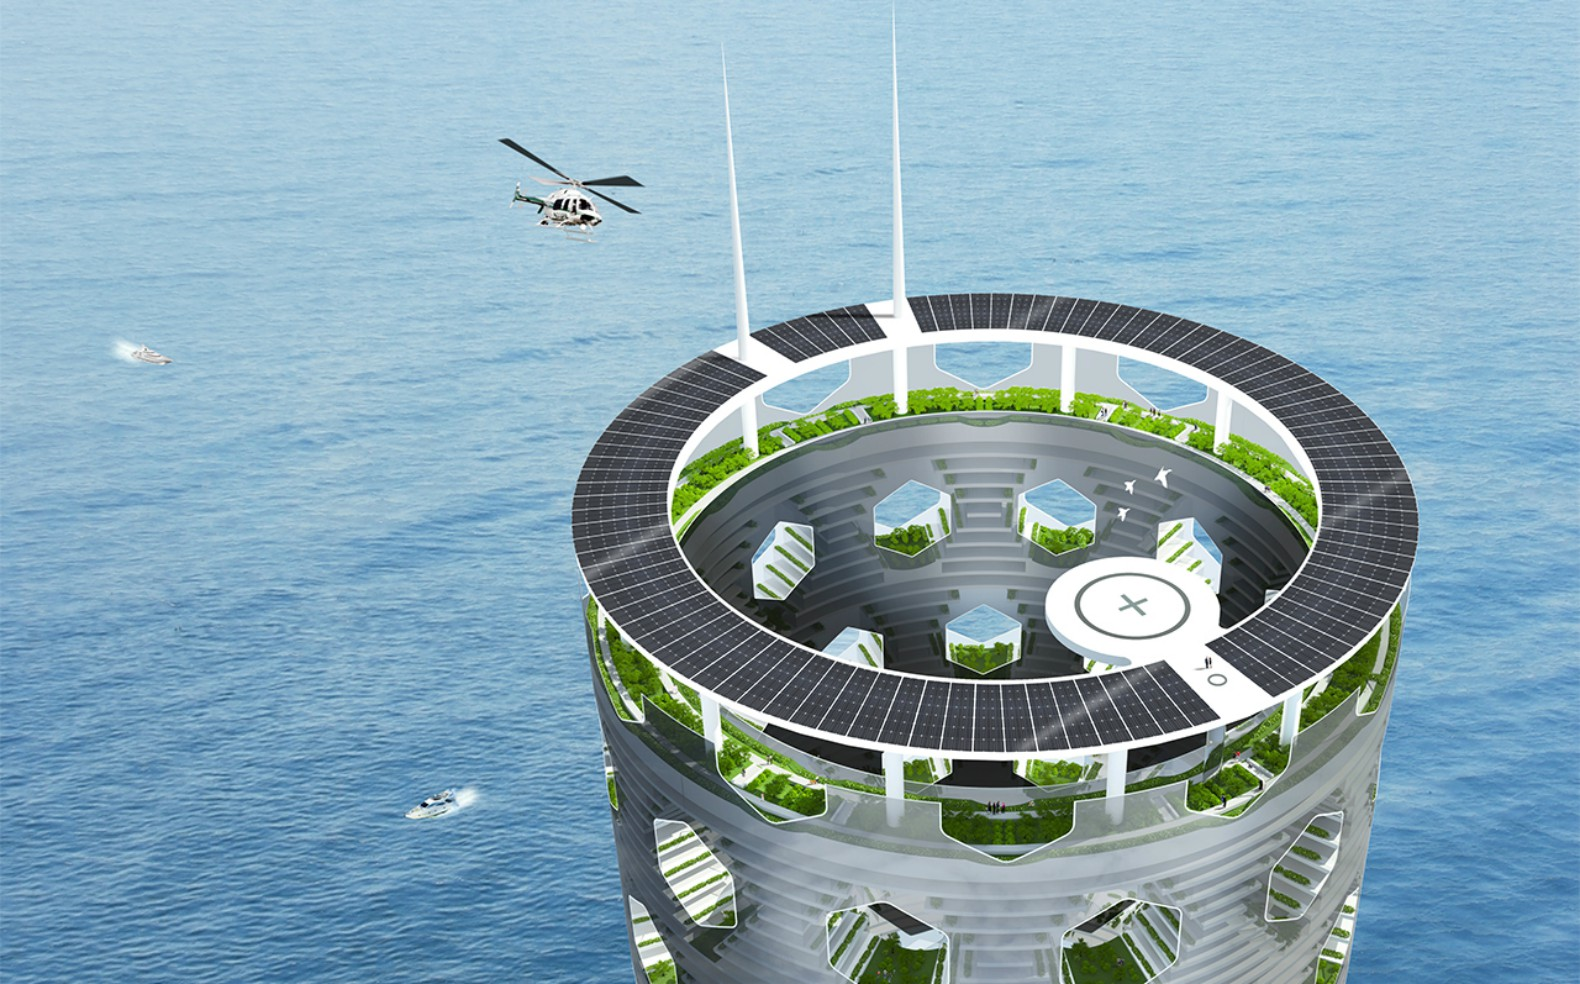 Solar Vertical City is a self-contained, green-infused tower planted into the ocean floor